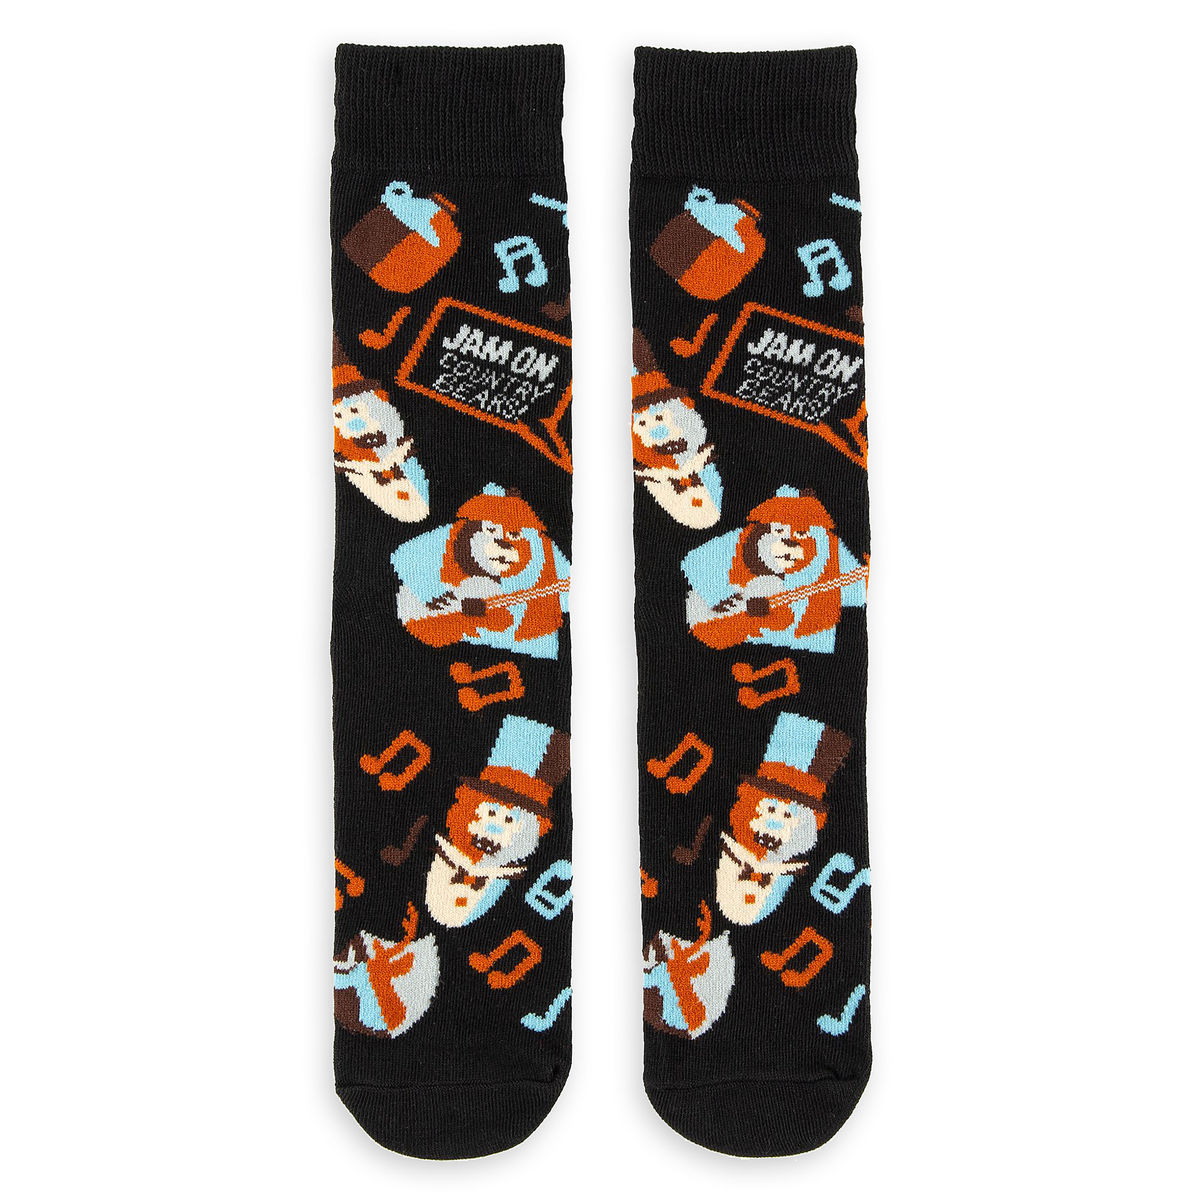 Disney Crew Socks for Adults - Country Bear Jamboree